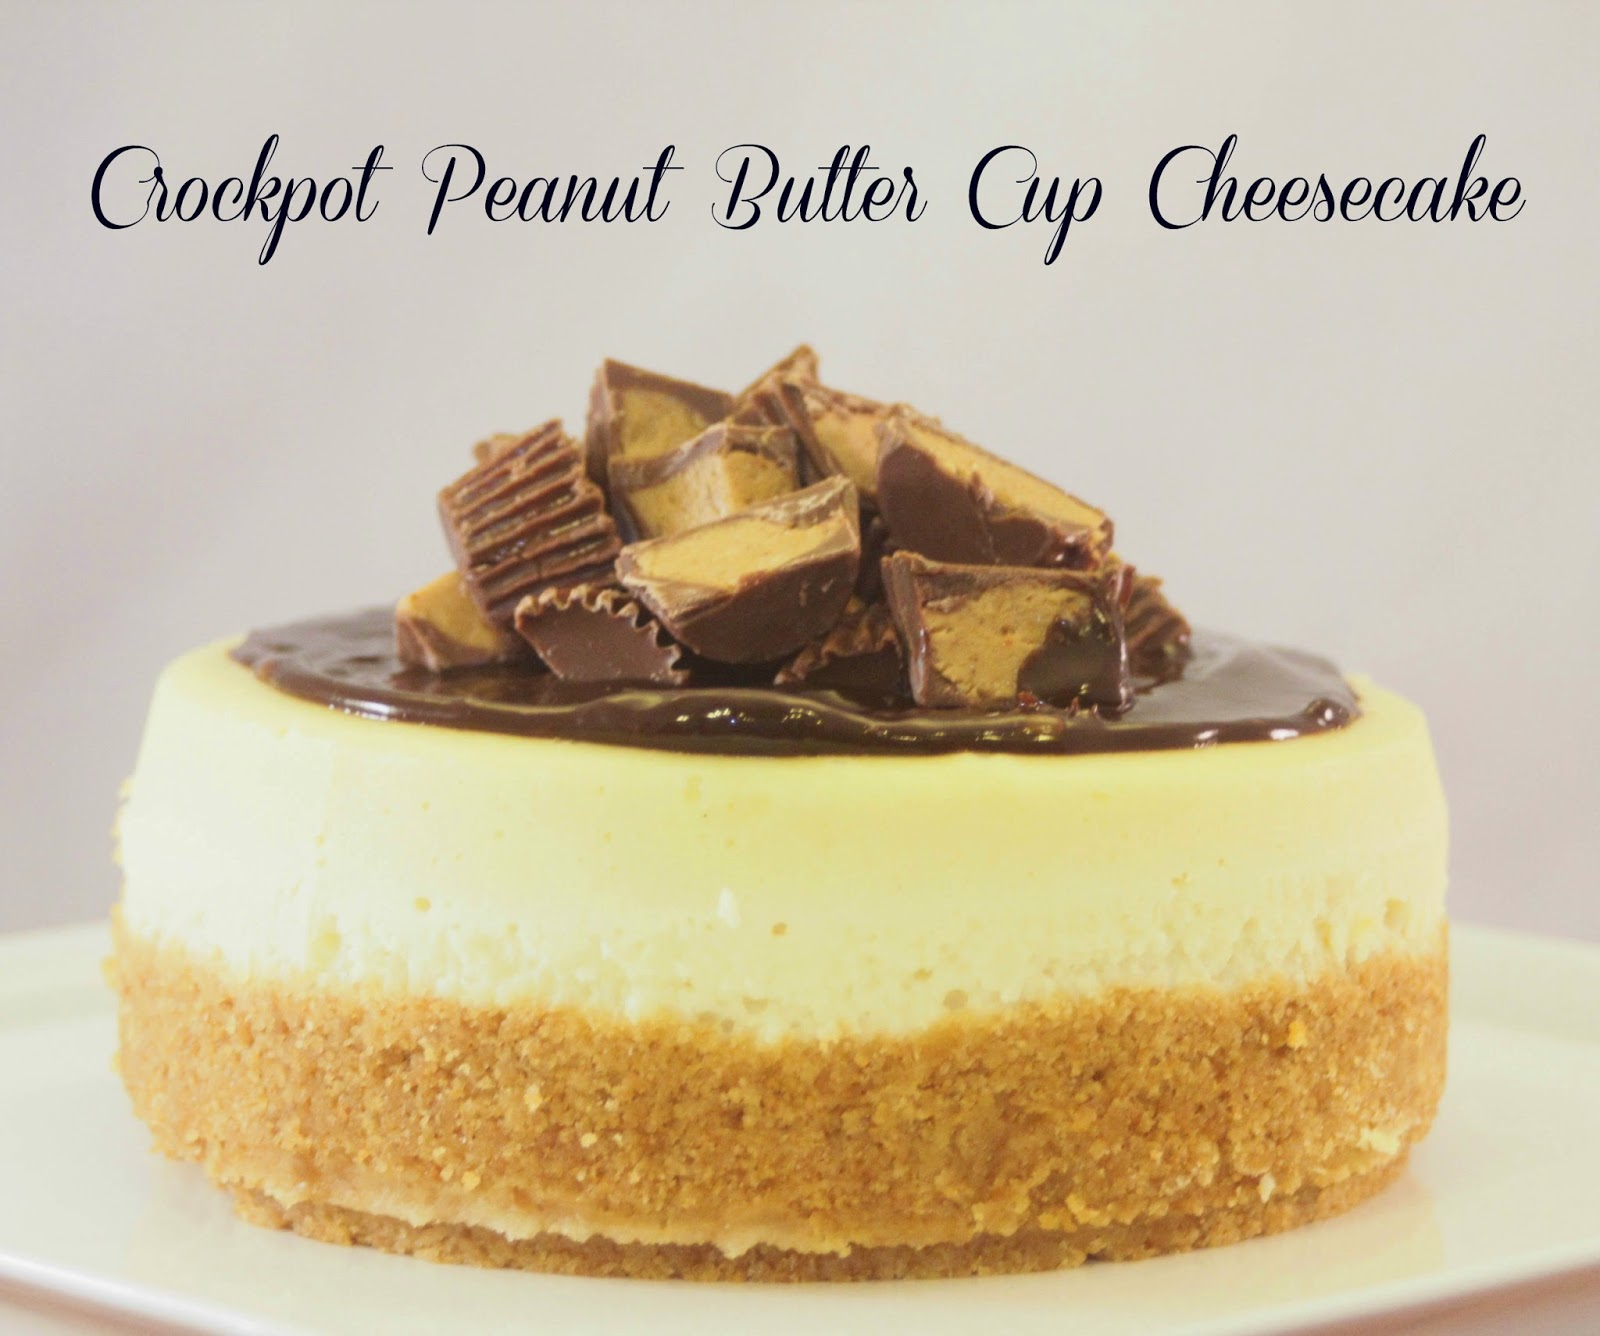 Crockpot Peanut Butter Cup Cheesecake from Crazy for Cookies and More